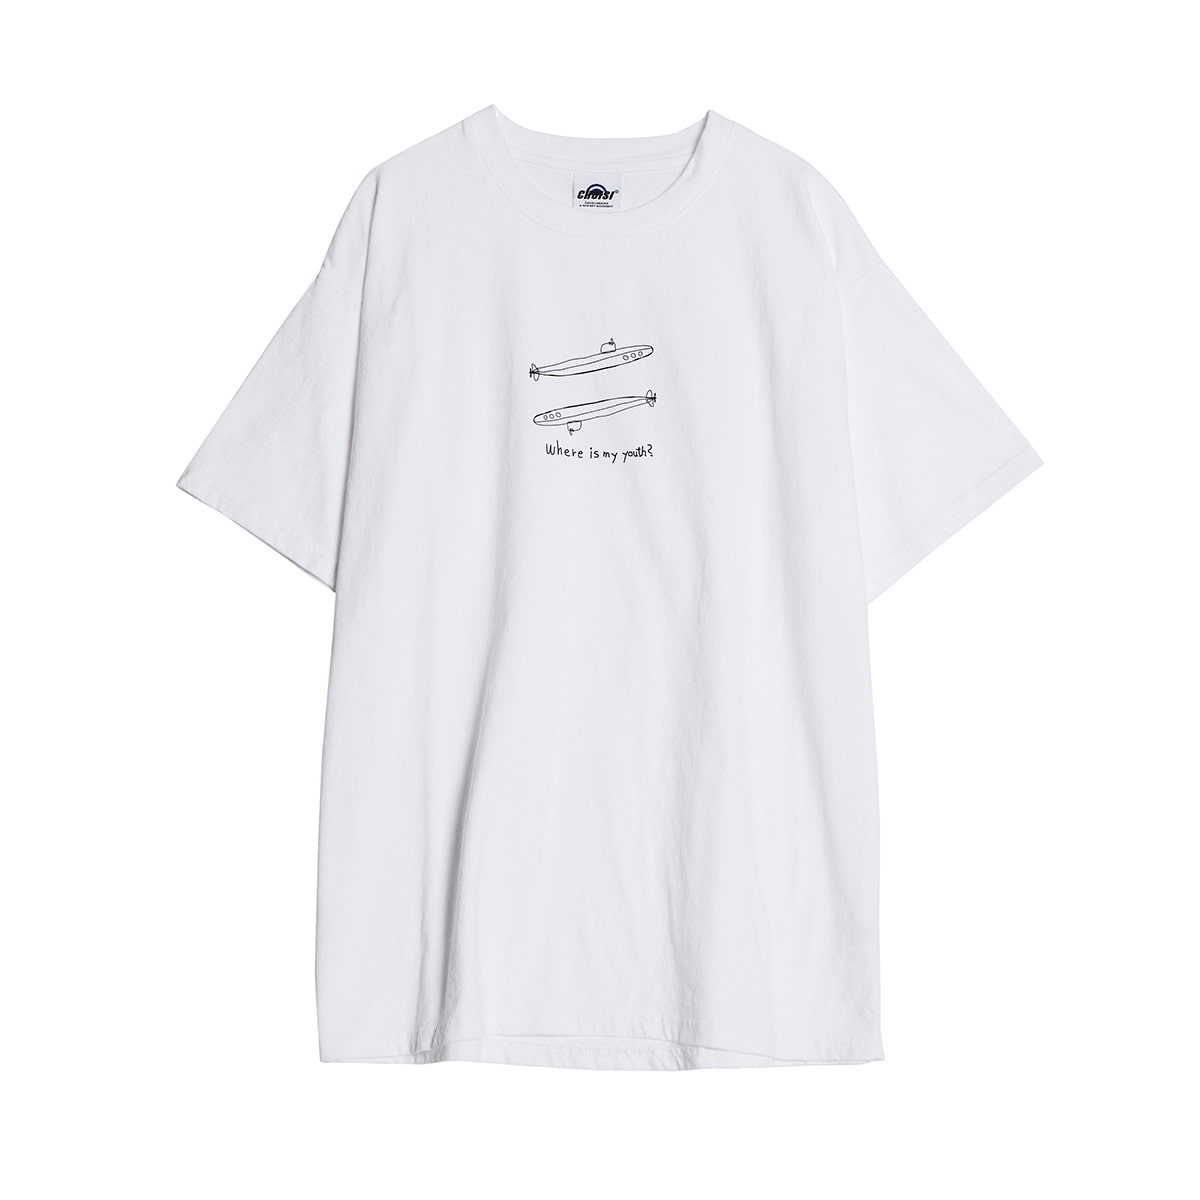 Submarine Sketch Short Sleeve, White